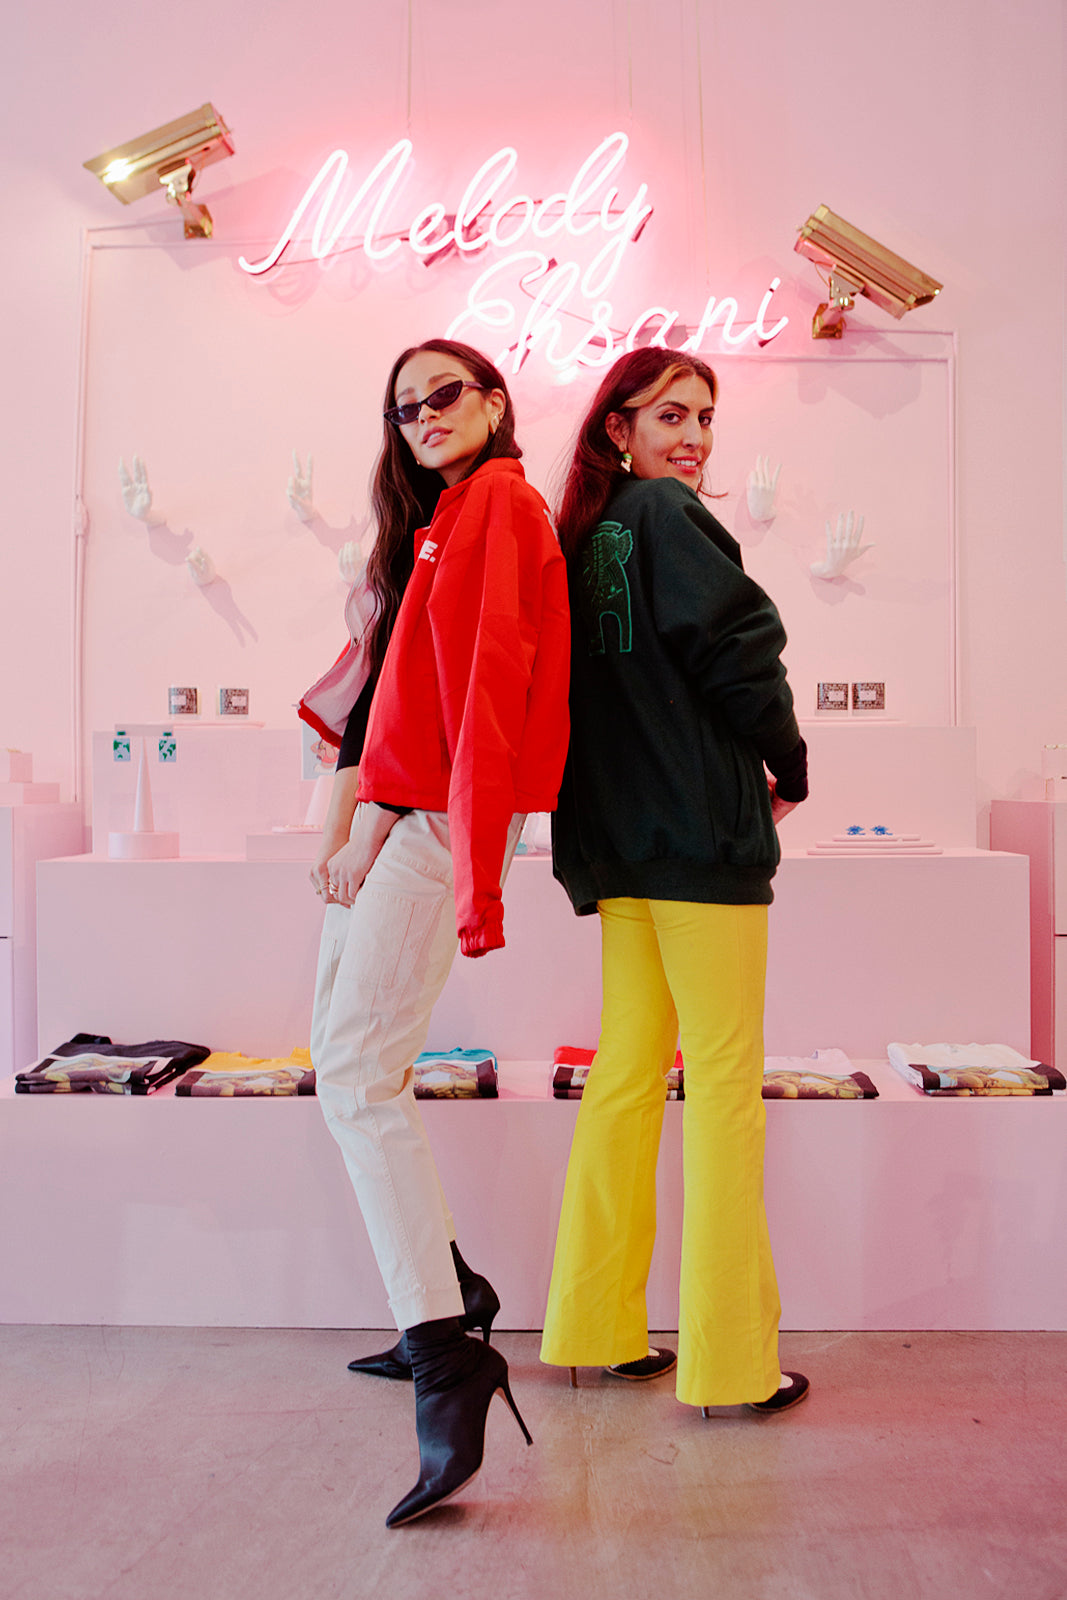 Shay Mitchell, in a red jacket and white pants (left), poses back to back with with Melody Ehsani (right), who's wearing a dark green jacket and yellow pants.